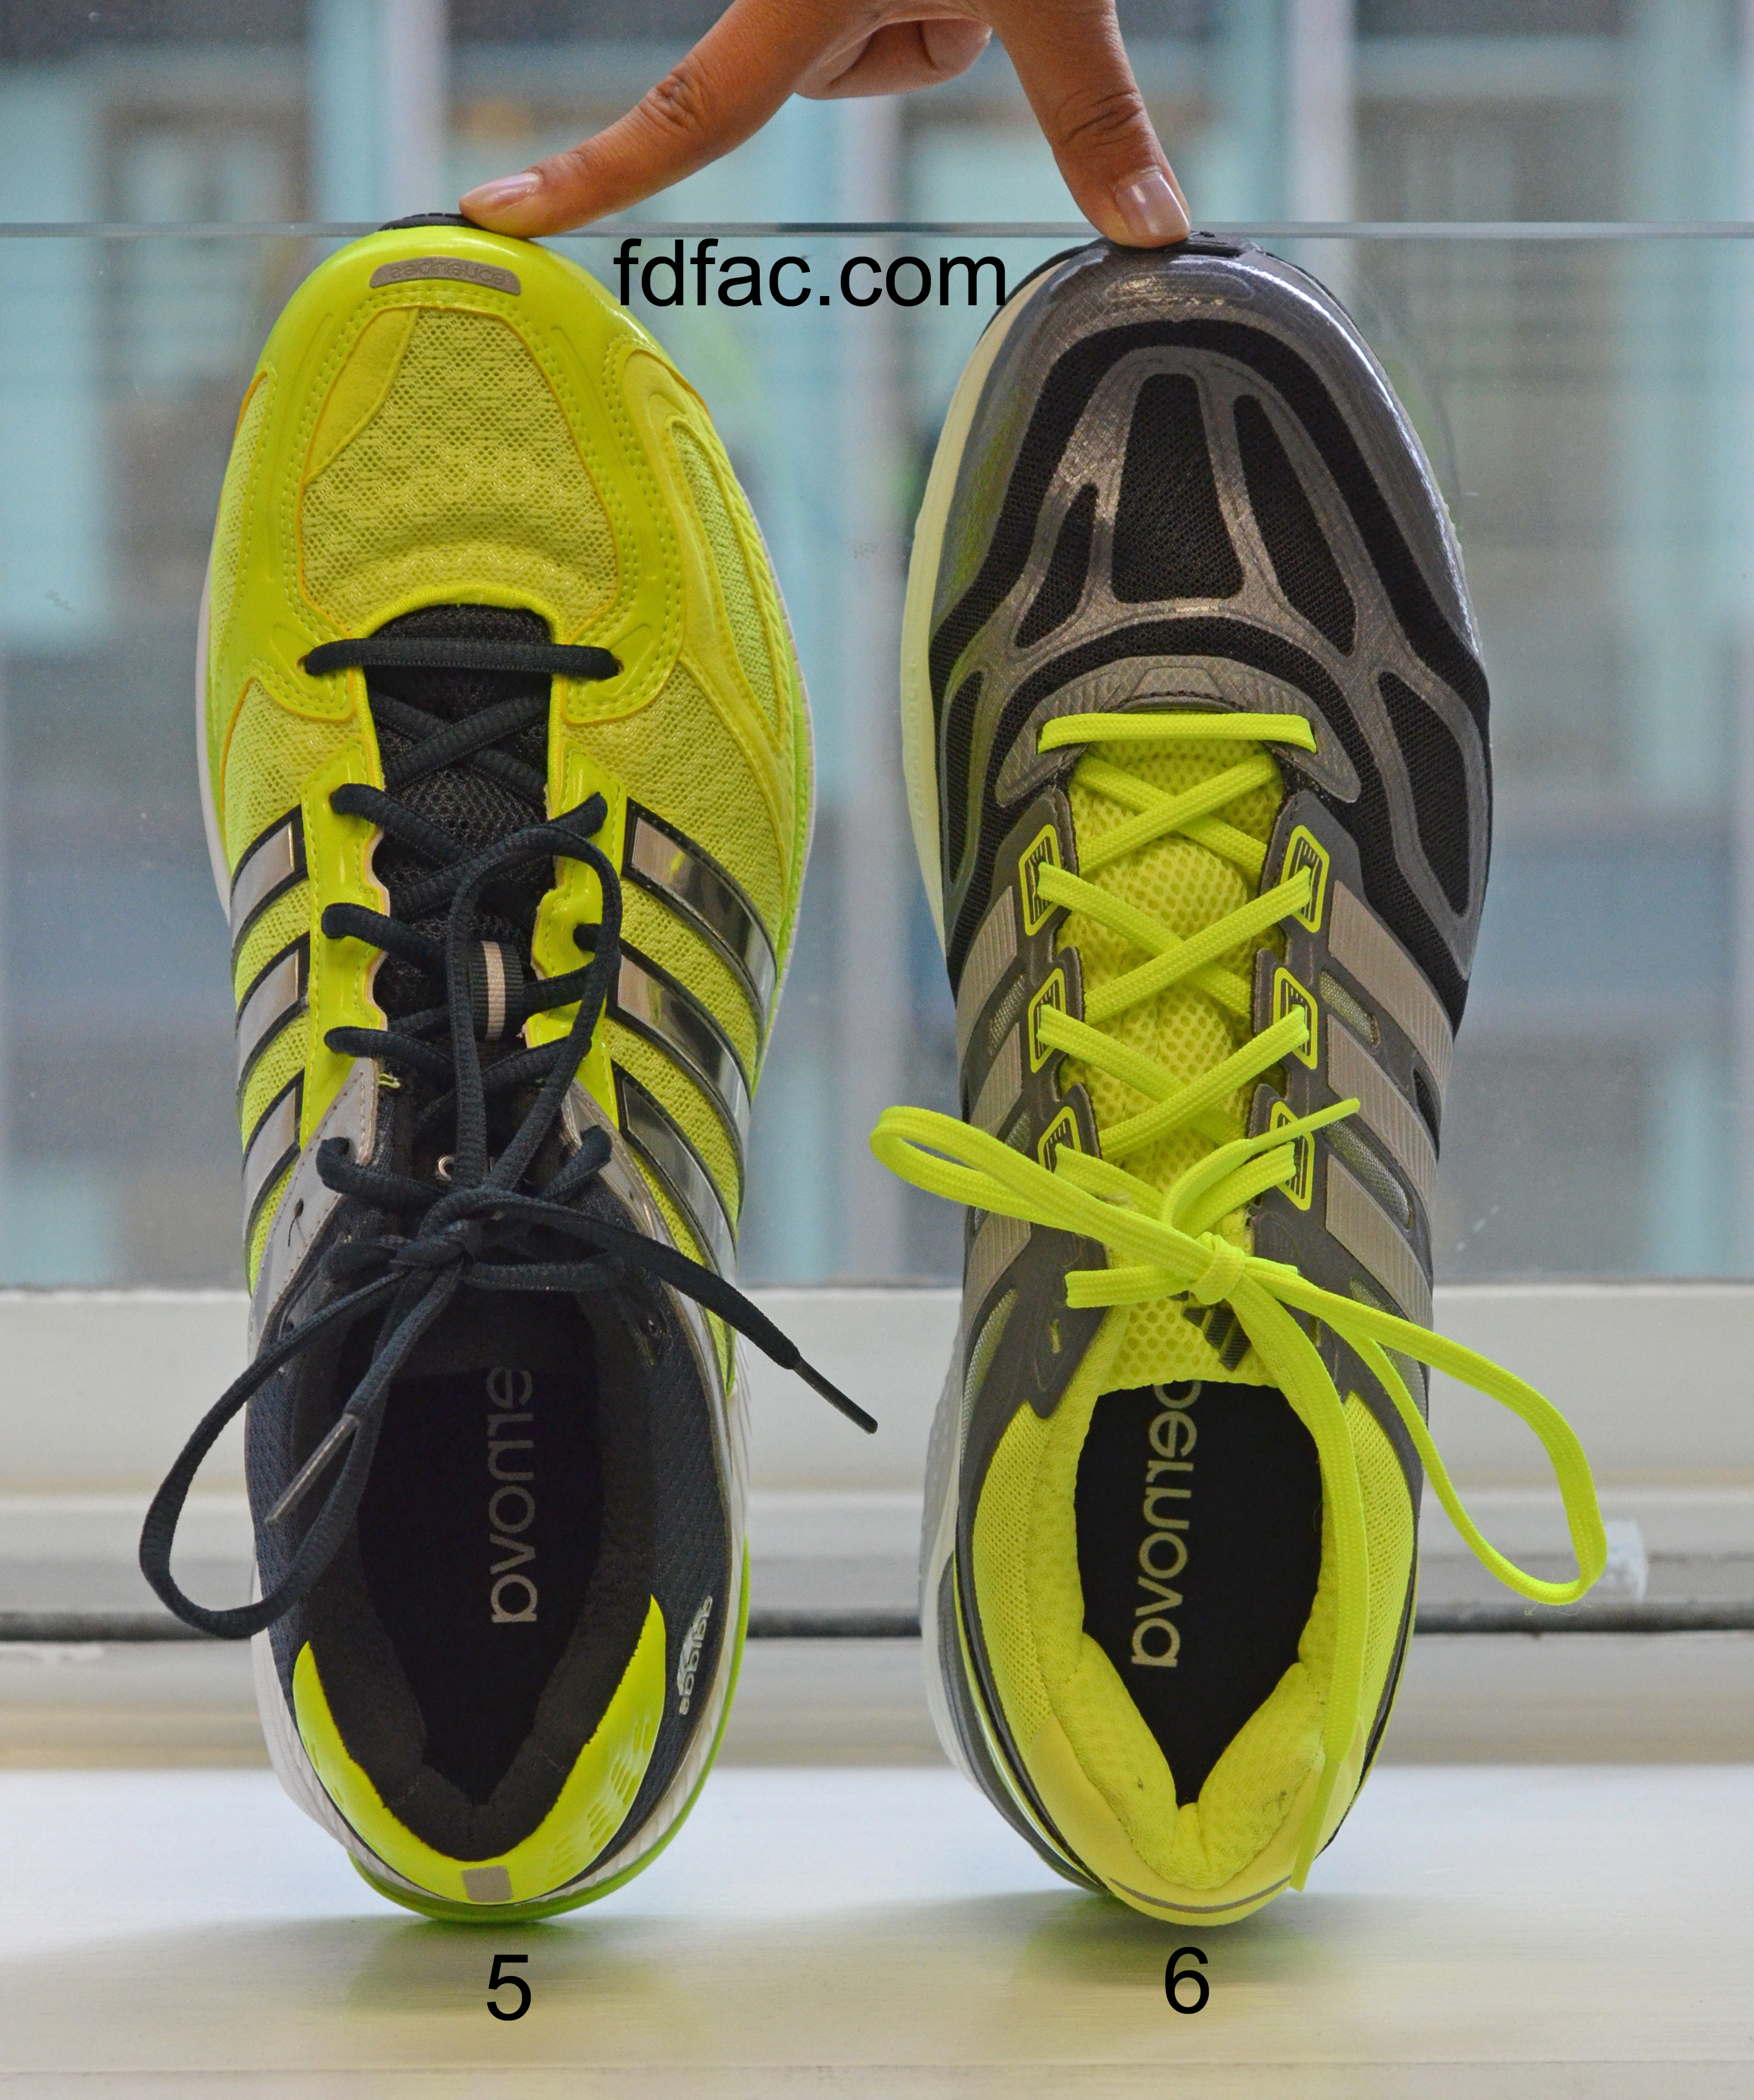 Shoe Review – Adidas Supernova Sequence 6 vs. 5 | Dr. Jenny ...